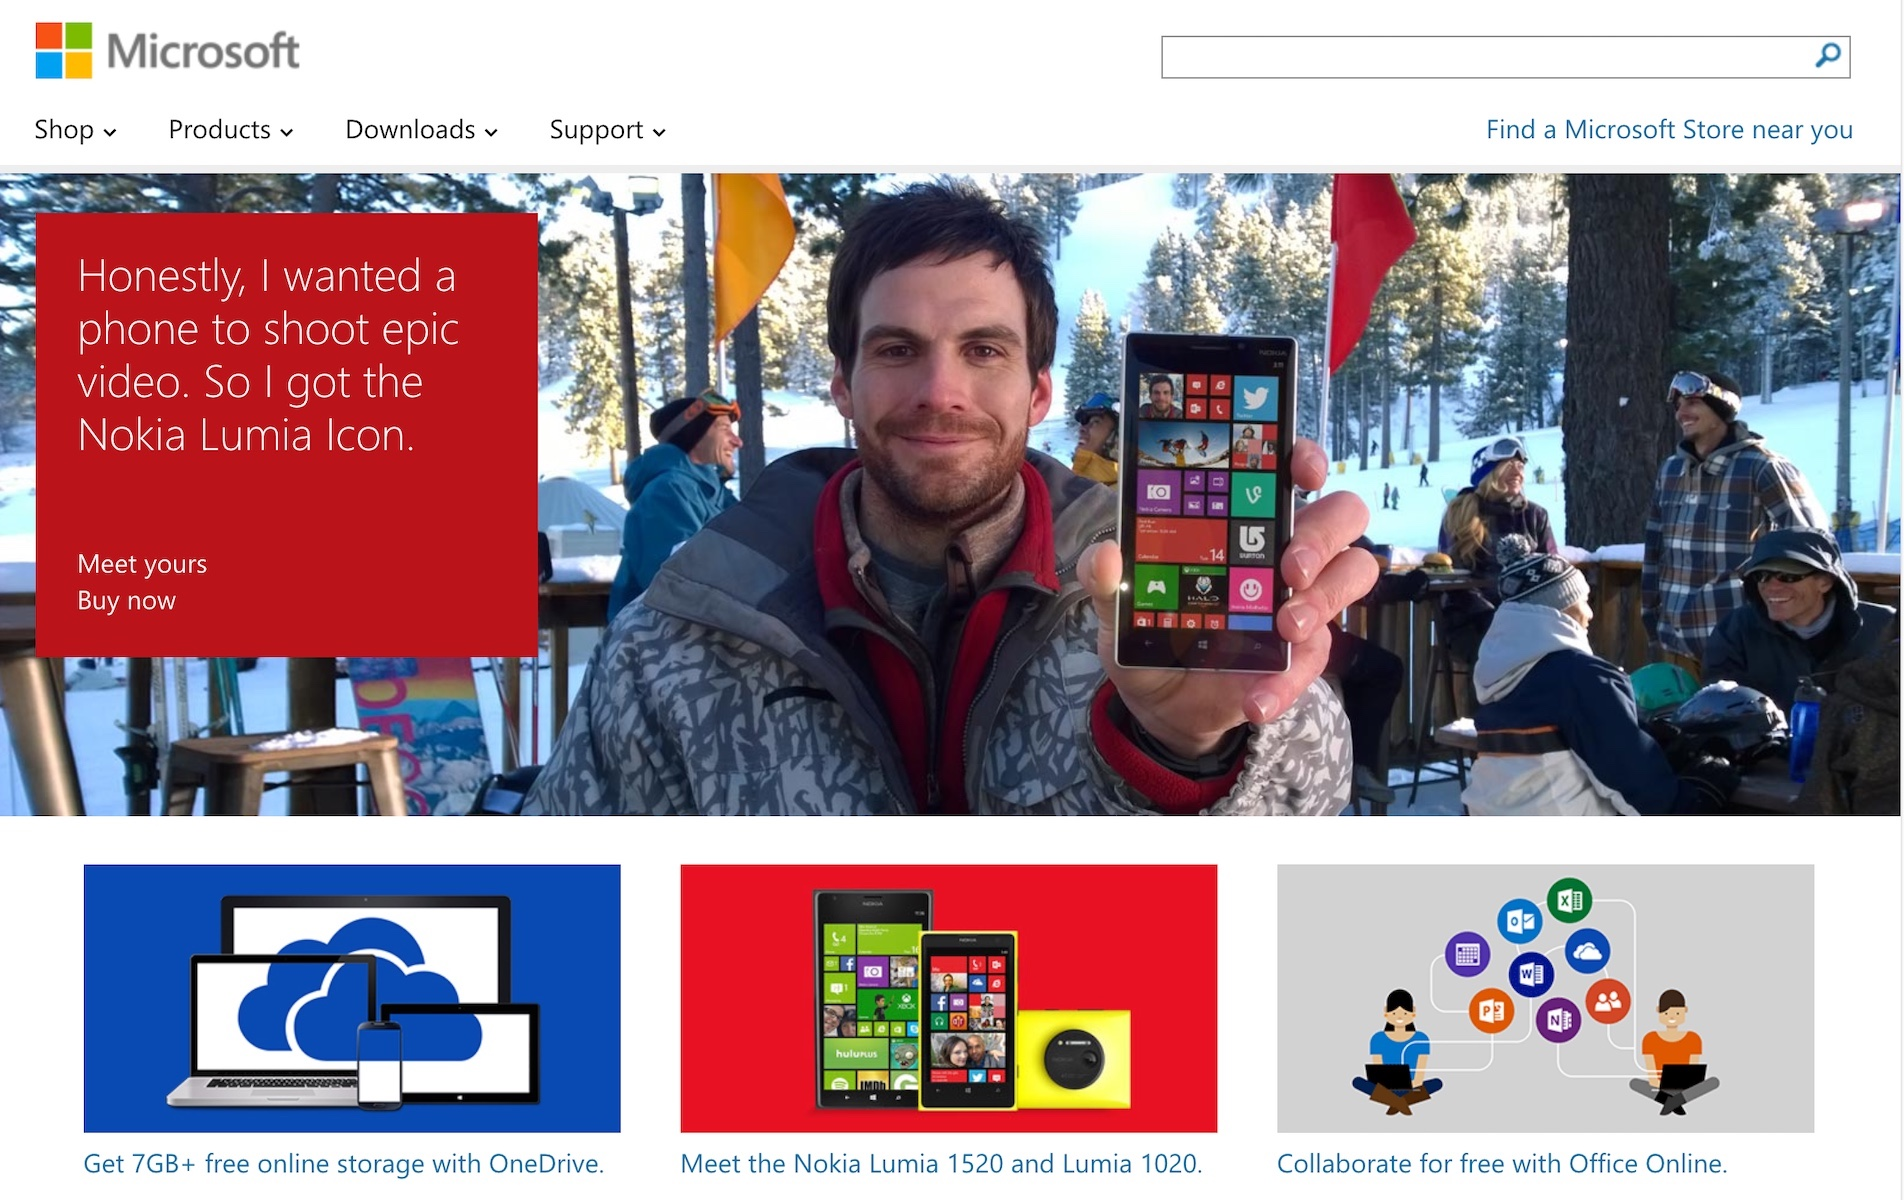 Nokia Lumia Windows Phone Homepage Promotion (2014)